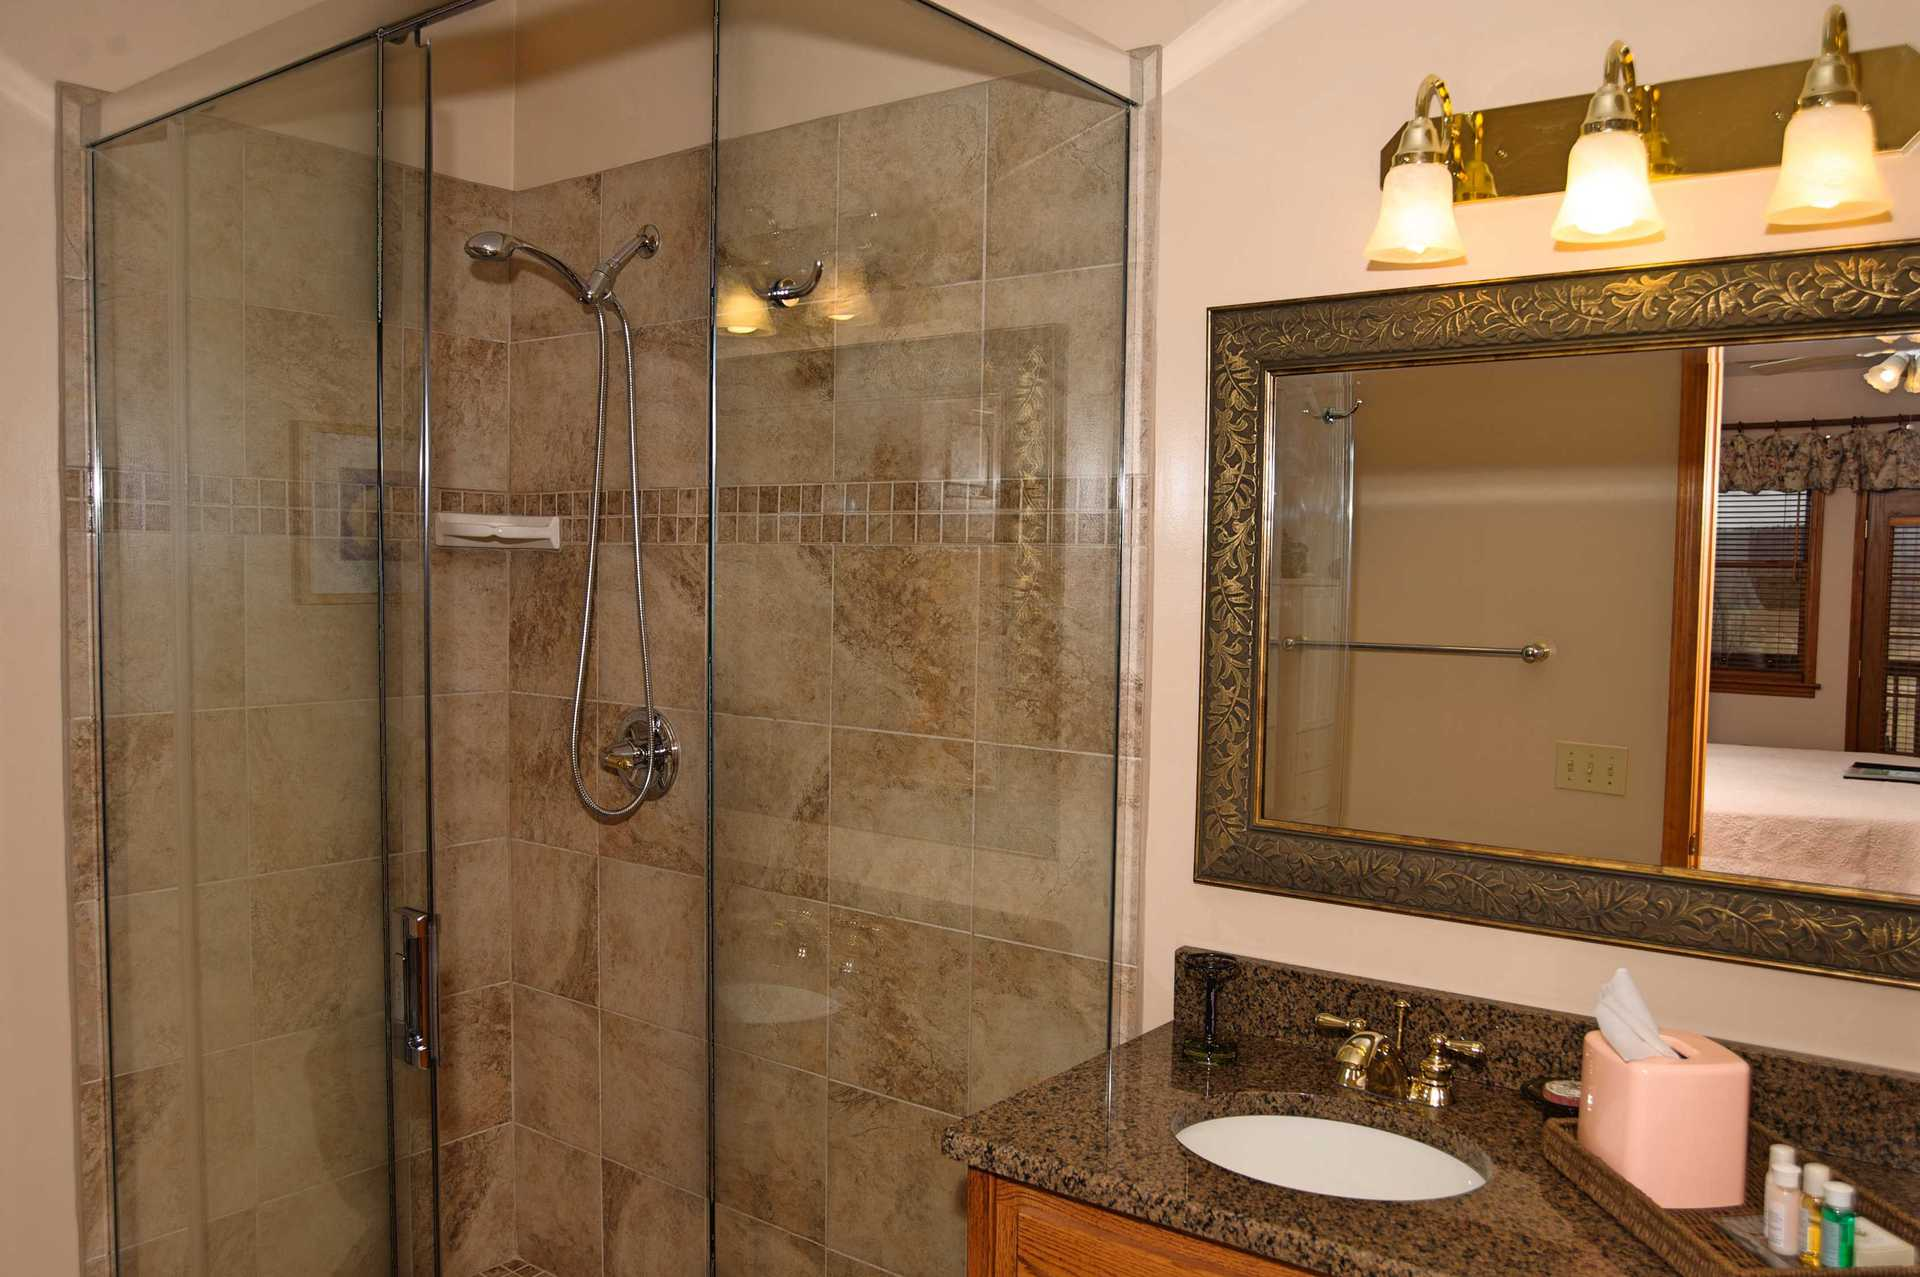 Newberry glass shower and vanity